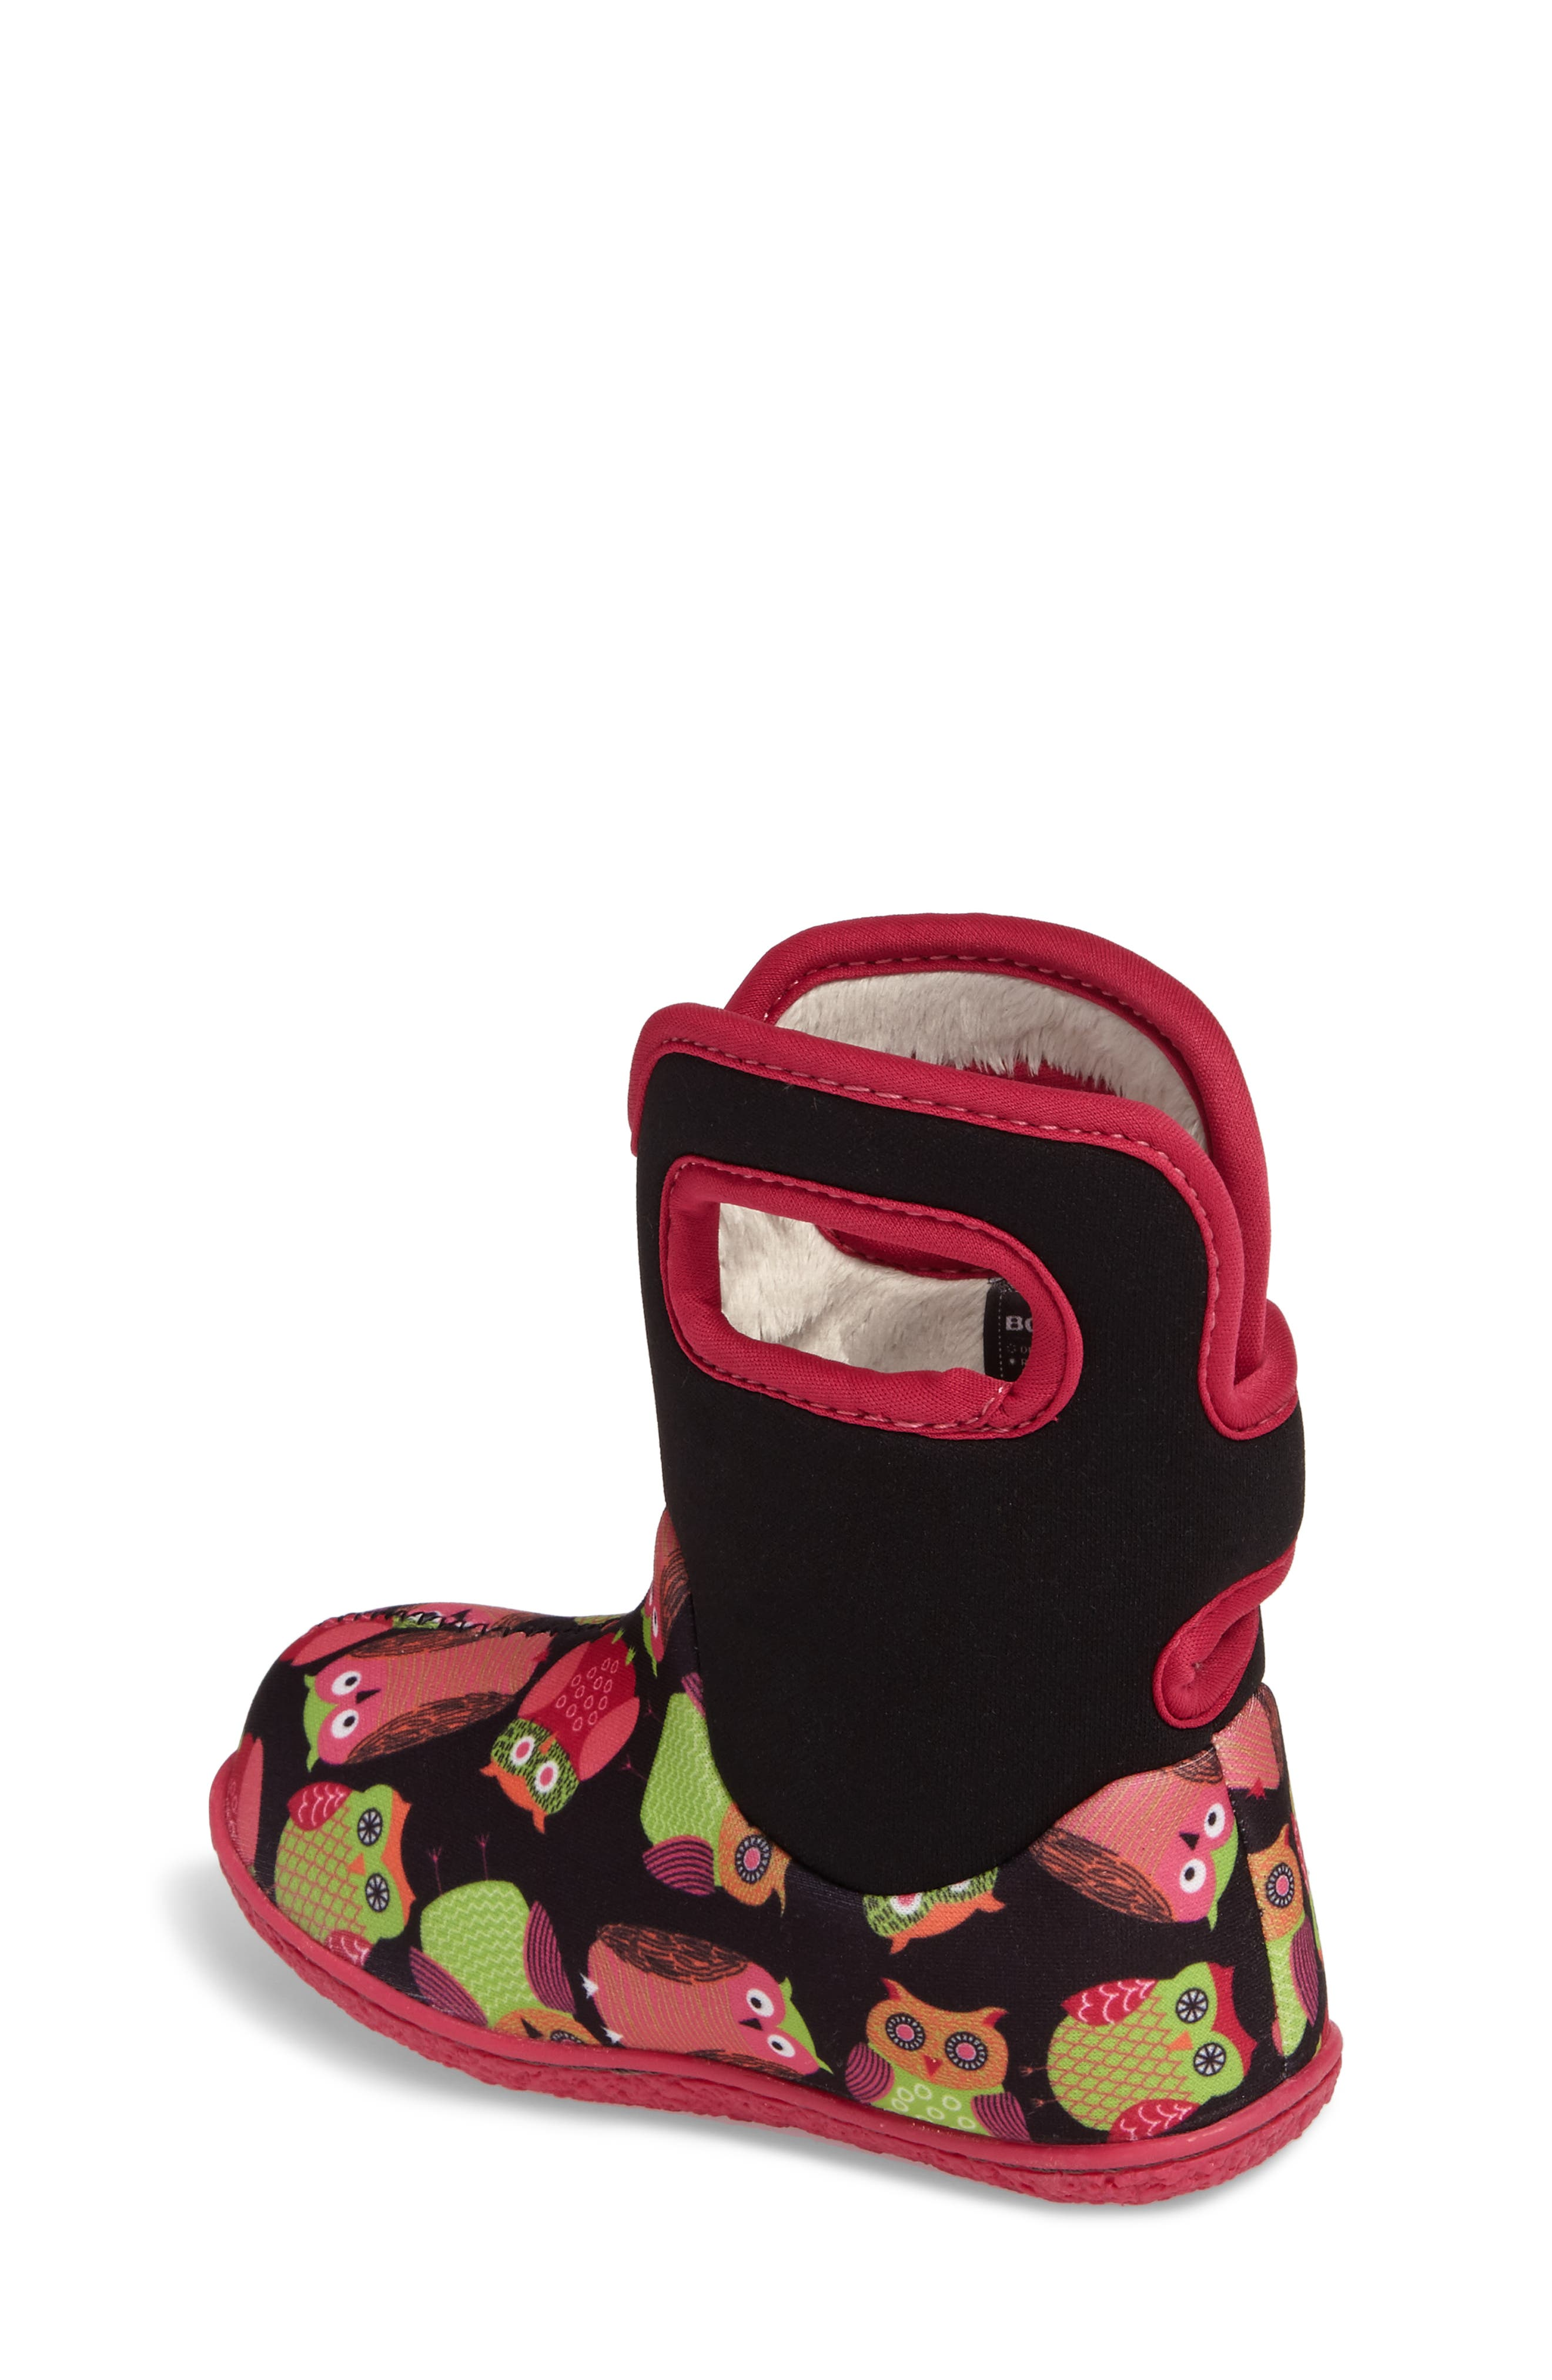 Alternate Image 2  - Bogs Baby Bogs Classic Owls Insulated Waterproof Boot (Baby, Walker & Toddler)